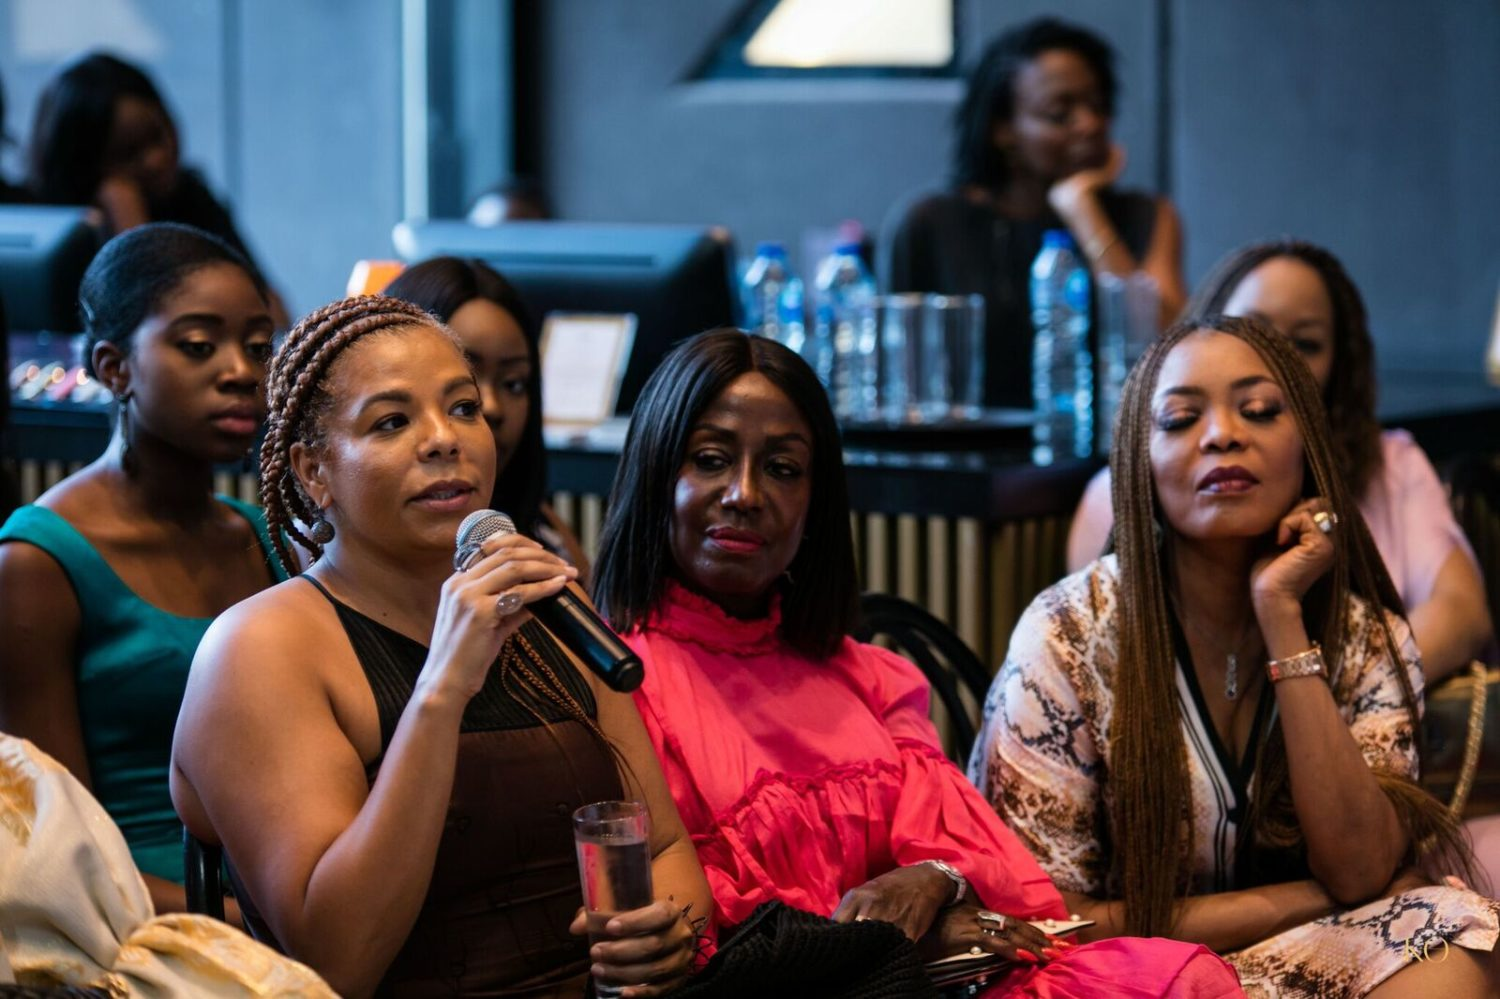 CLAN Hosted A Powerful Event For Women In ALÁRA  Over Cocktails & Canapés – Here's All That Happened